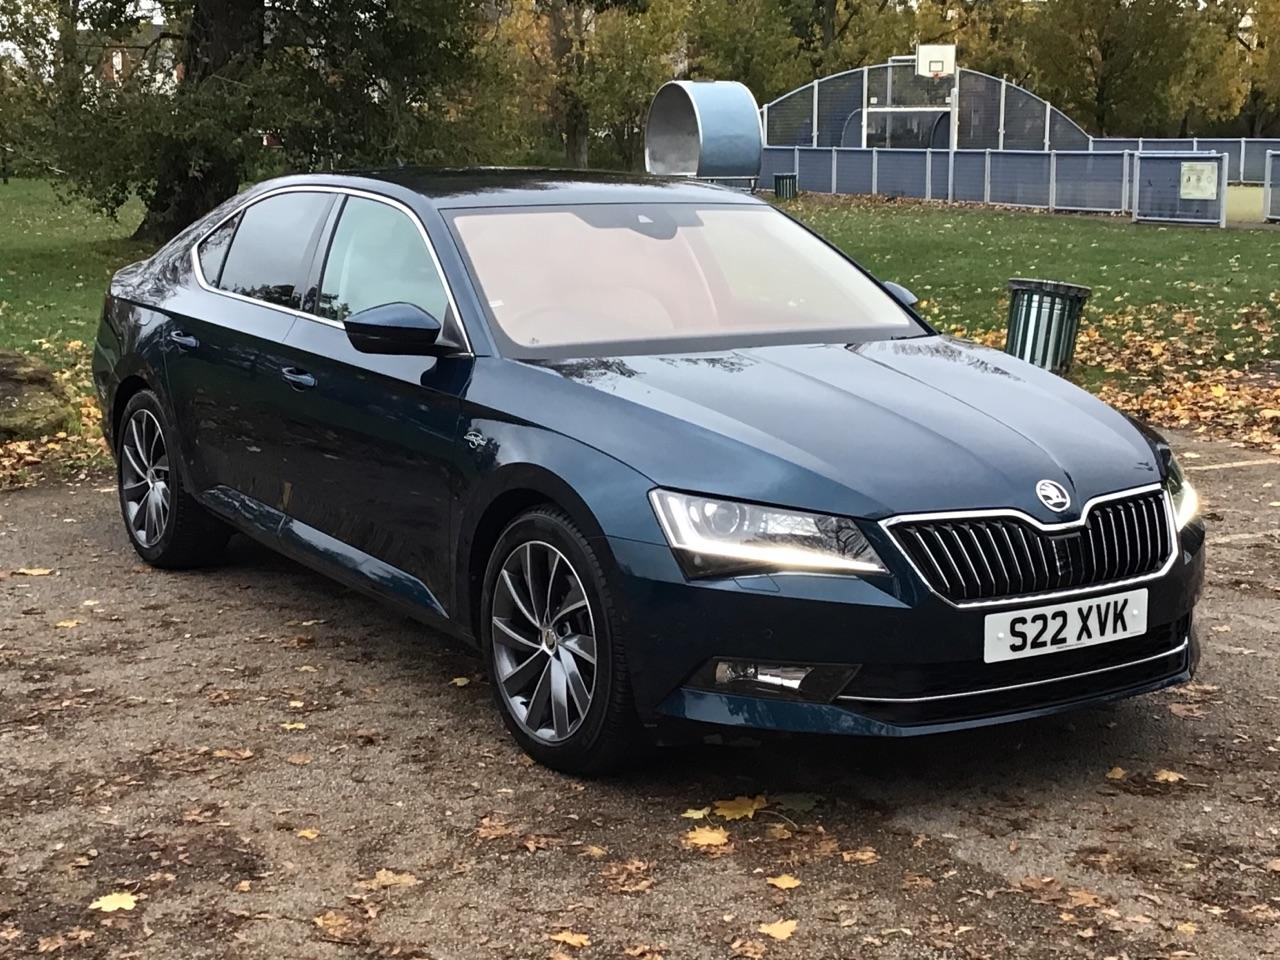 Skoda Superb 2.0 TSI Laurin + Klement 5dr DSG Hatchback Petrol Blue